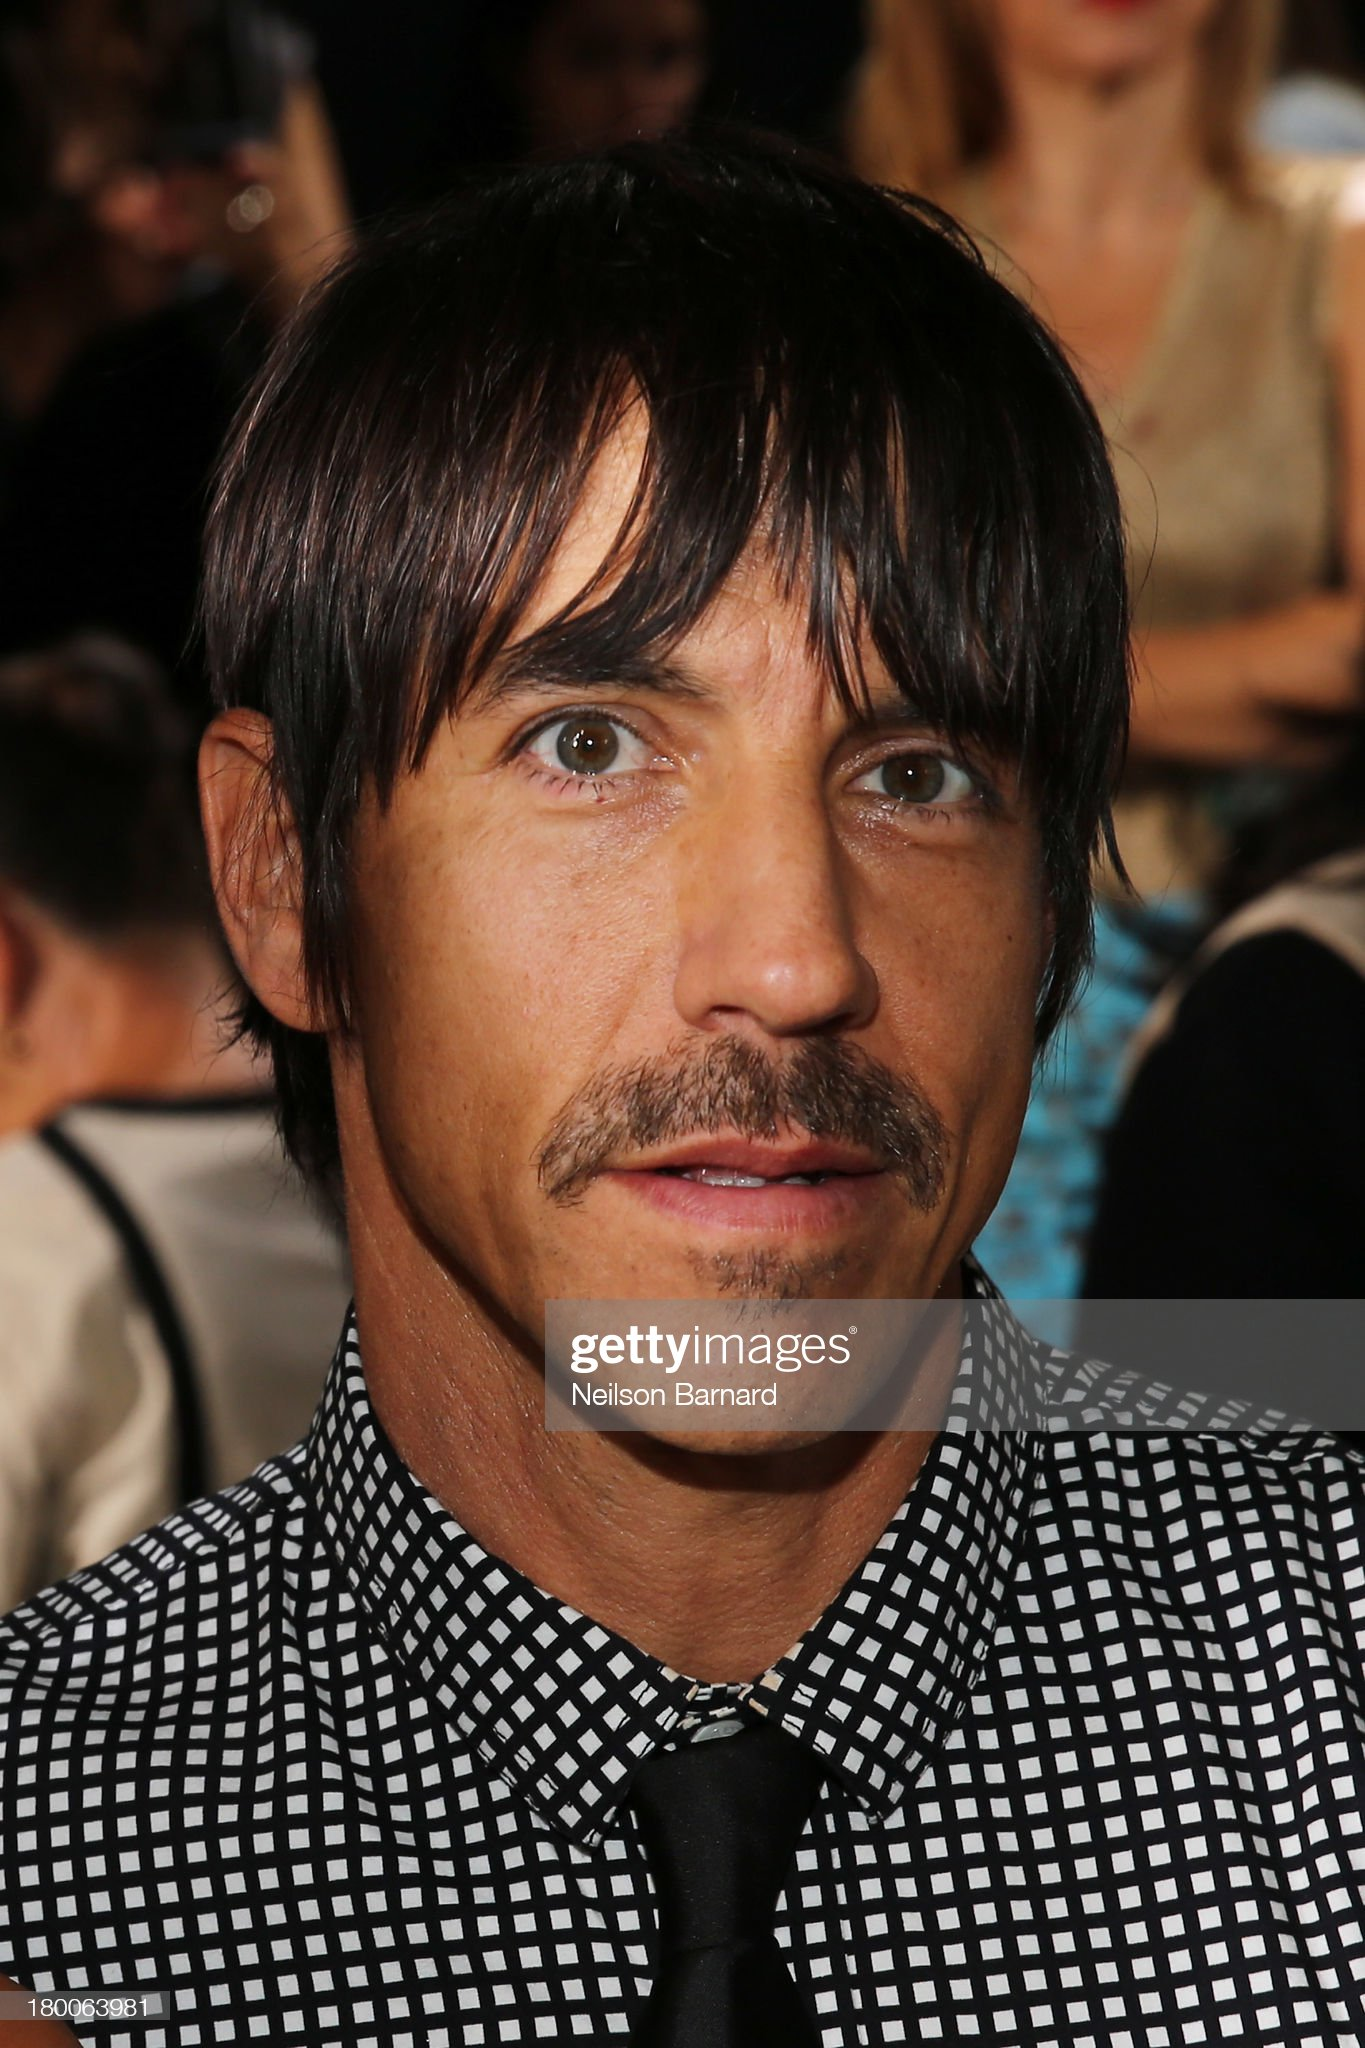 ¿Cuánto mide Anthony Kiedis? - Altura - Real height Anthony-kiedis-attends-dkny-womens-fashion-show-during-mercedesbenz-picture-id180063981?s=2048x2048